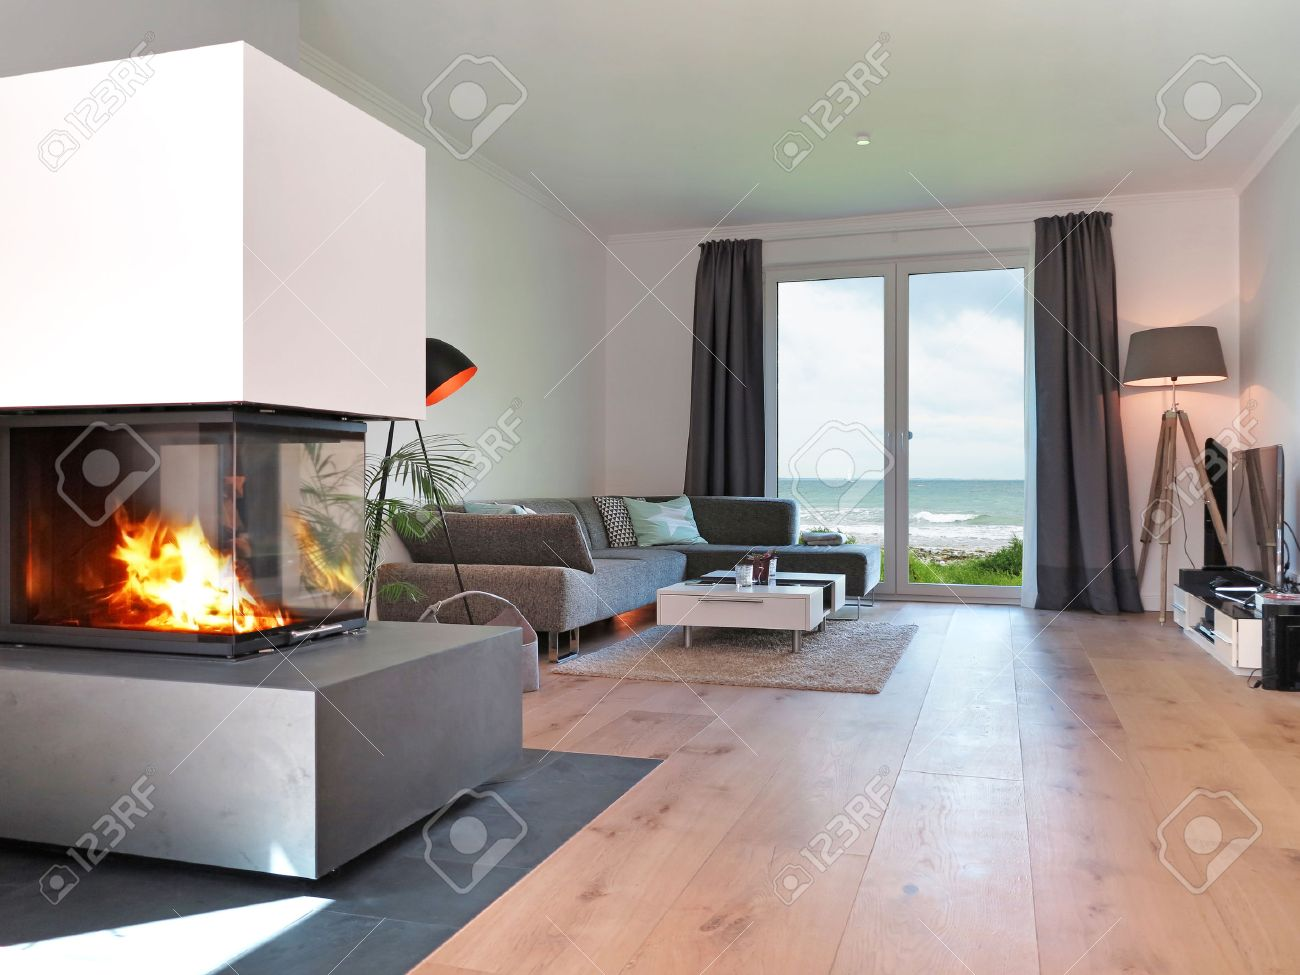 Modern Living Room With Fireplace Modern Living Room With Fireplace And A View To The Sea Stock